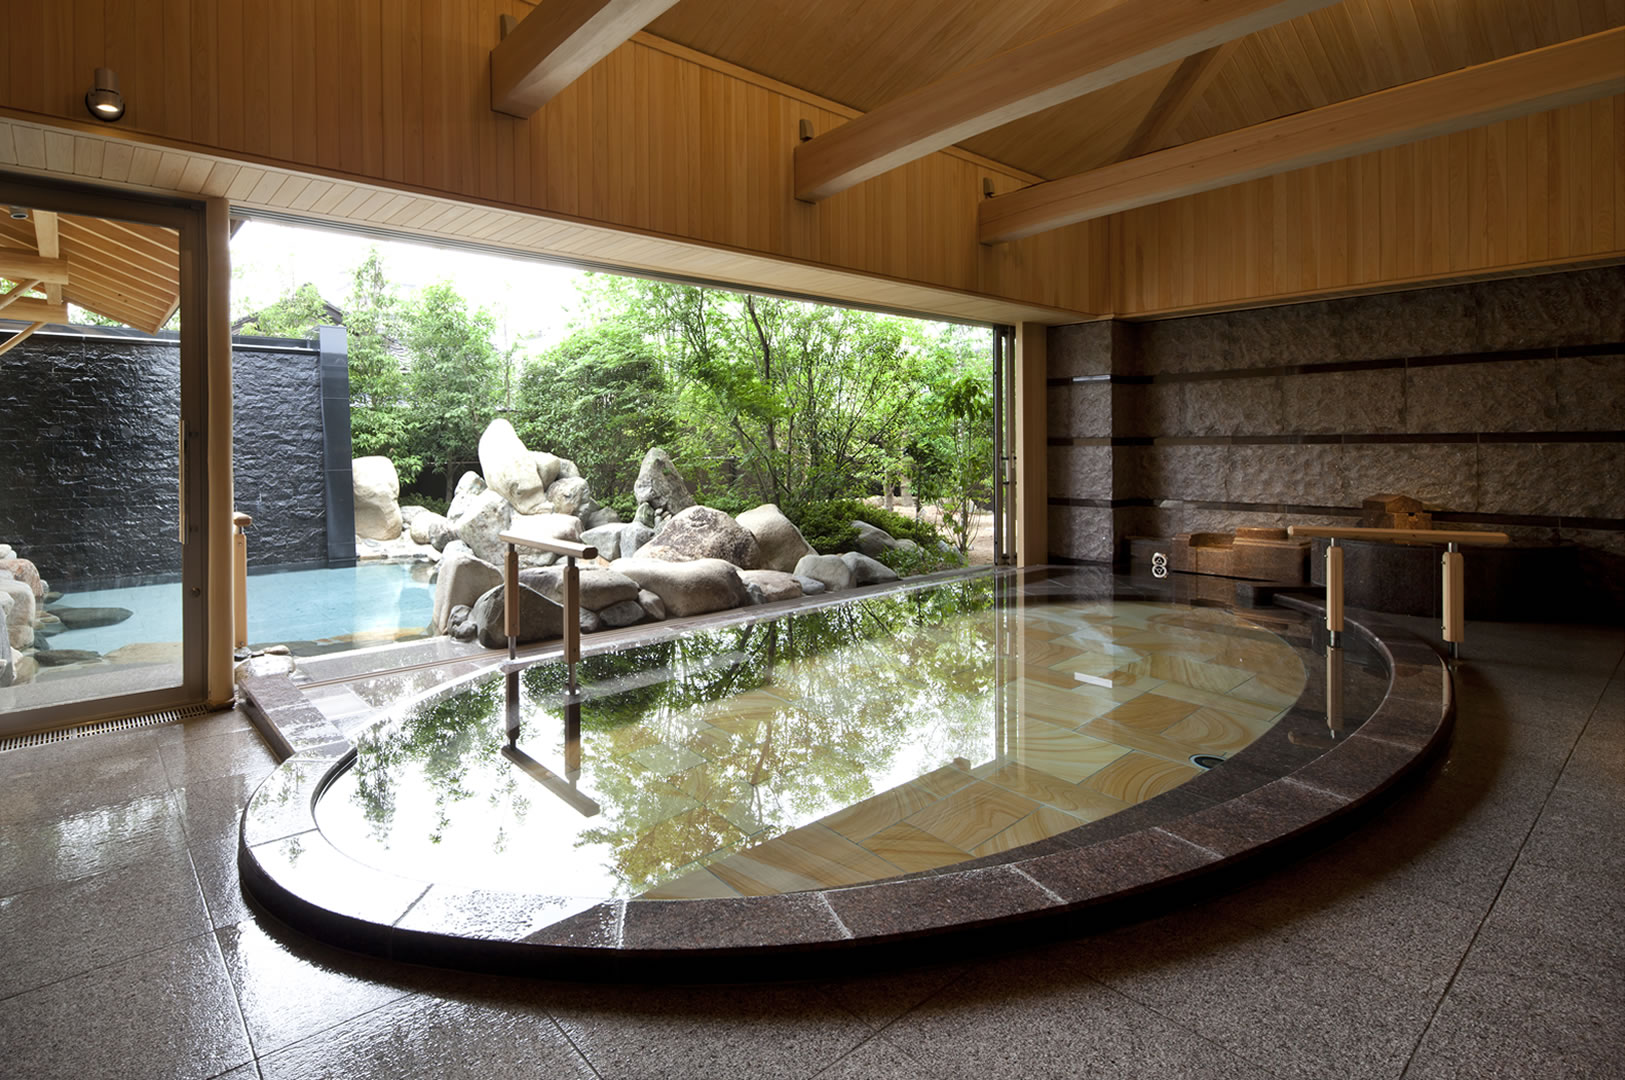 Japanese Style Inn And Hot Spring Spa